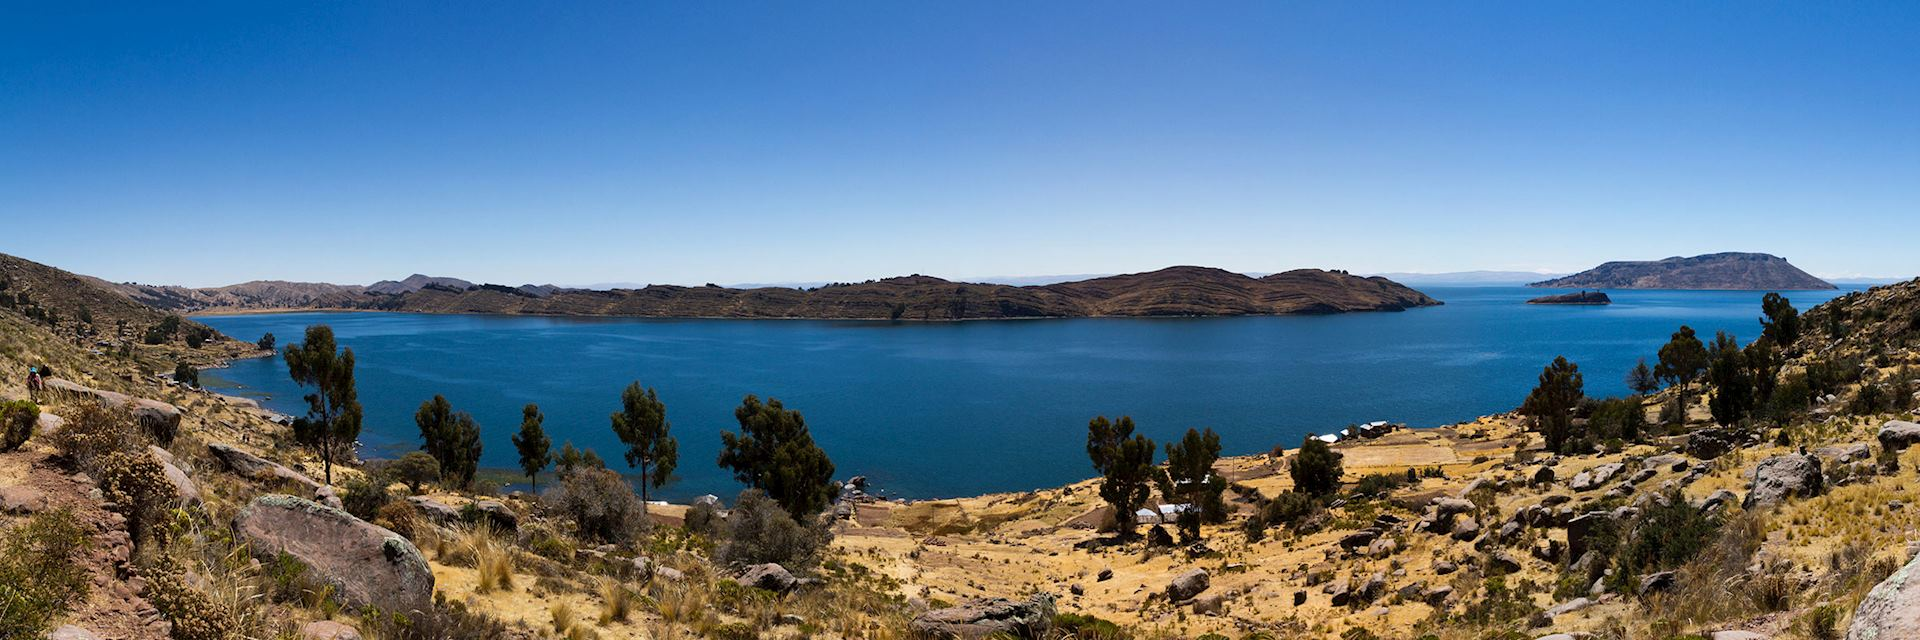 Lake Titicaca in Peru